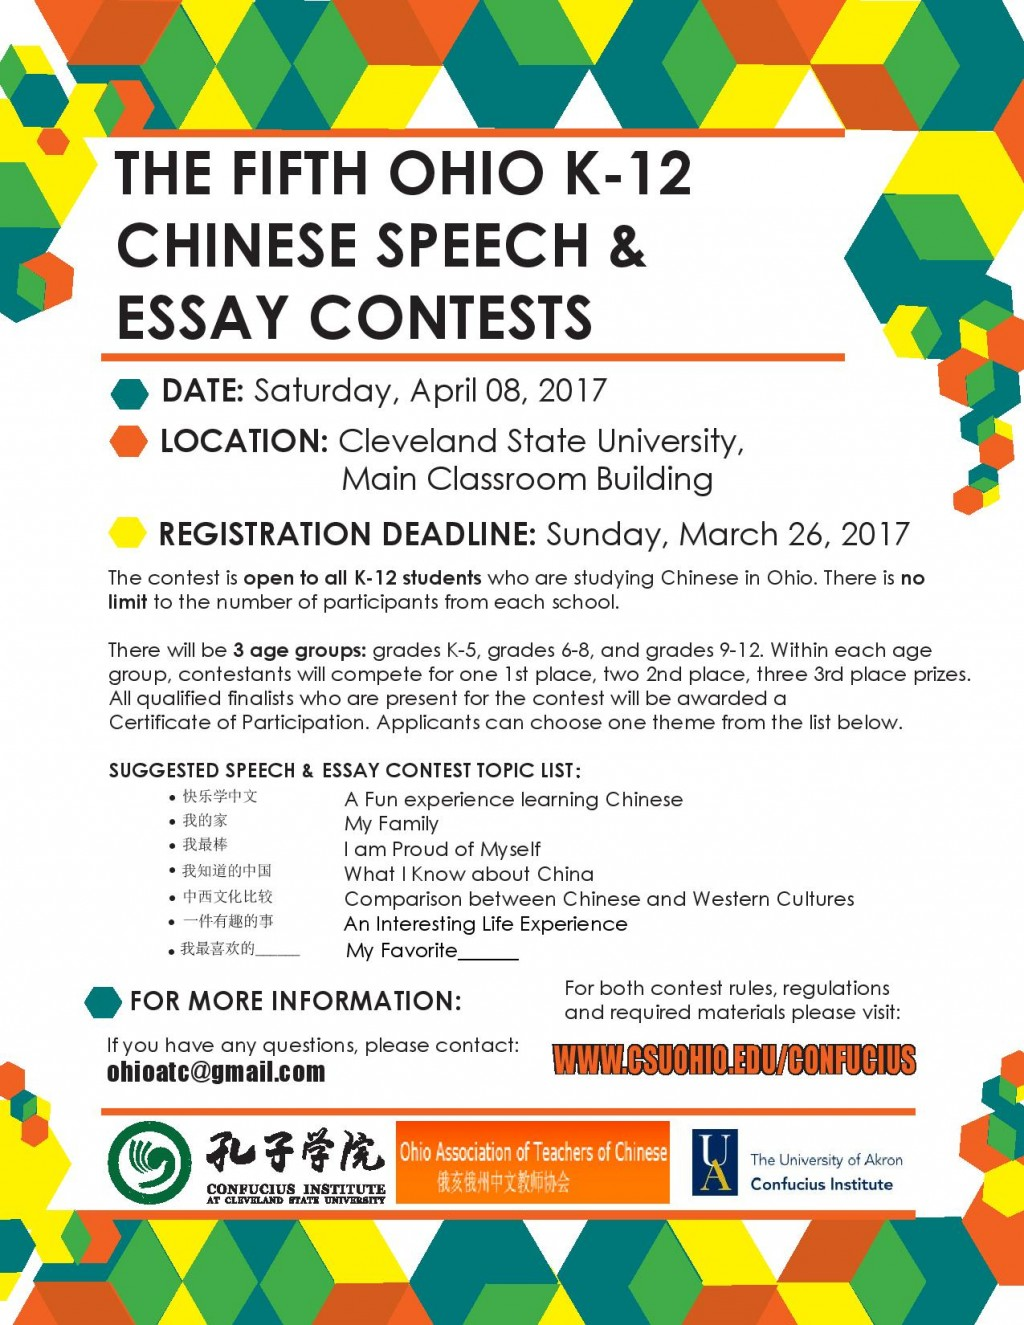 009 Essay Example Contest Confucius The Ohio K Chinese Speech Contests College Wr Writing For High School Students Student Staggering 2017 Online Competition India Optimist International Large